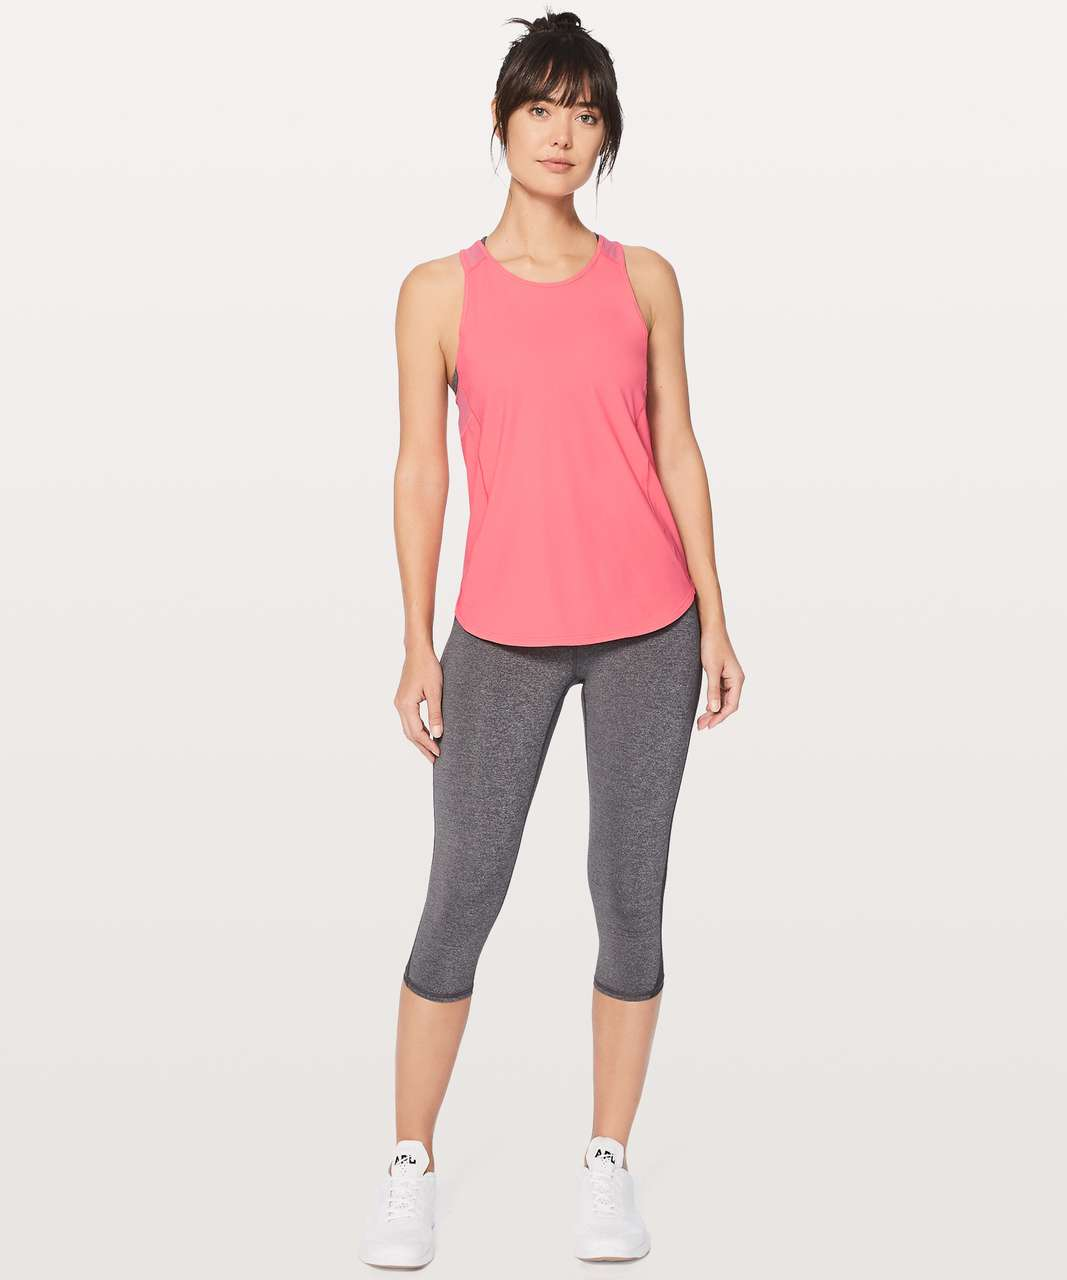 Lululemon Sculpt Tank II - Flash Light Tone